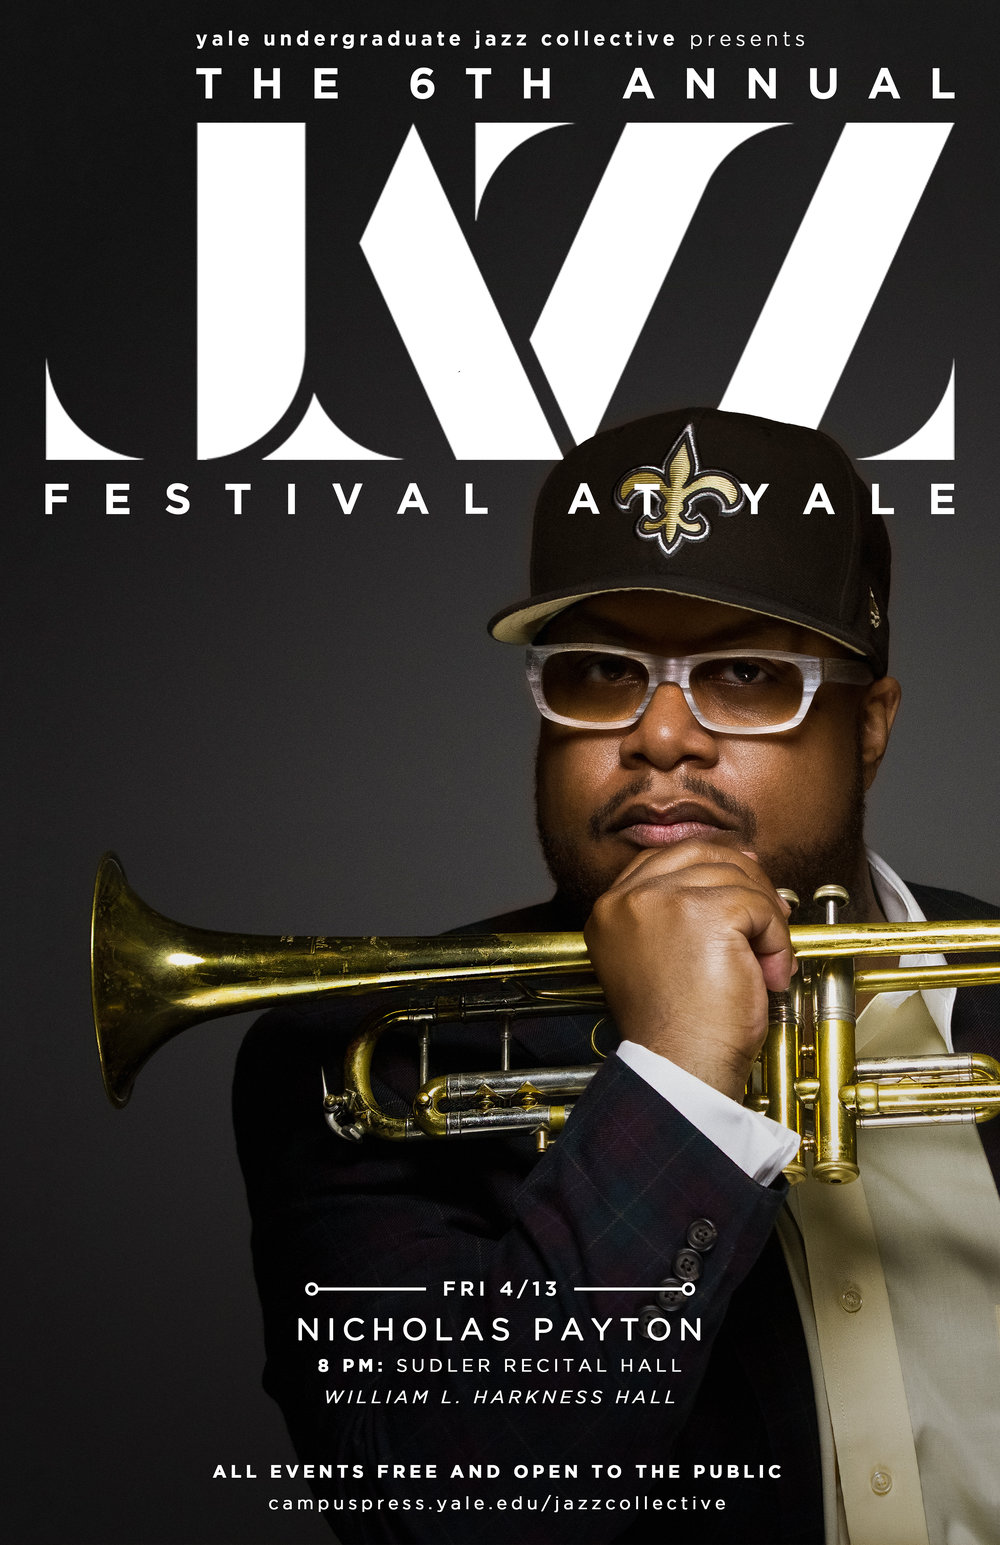 The 6th Annual Jazz Festival at Yale